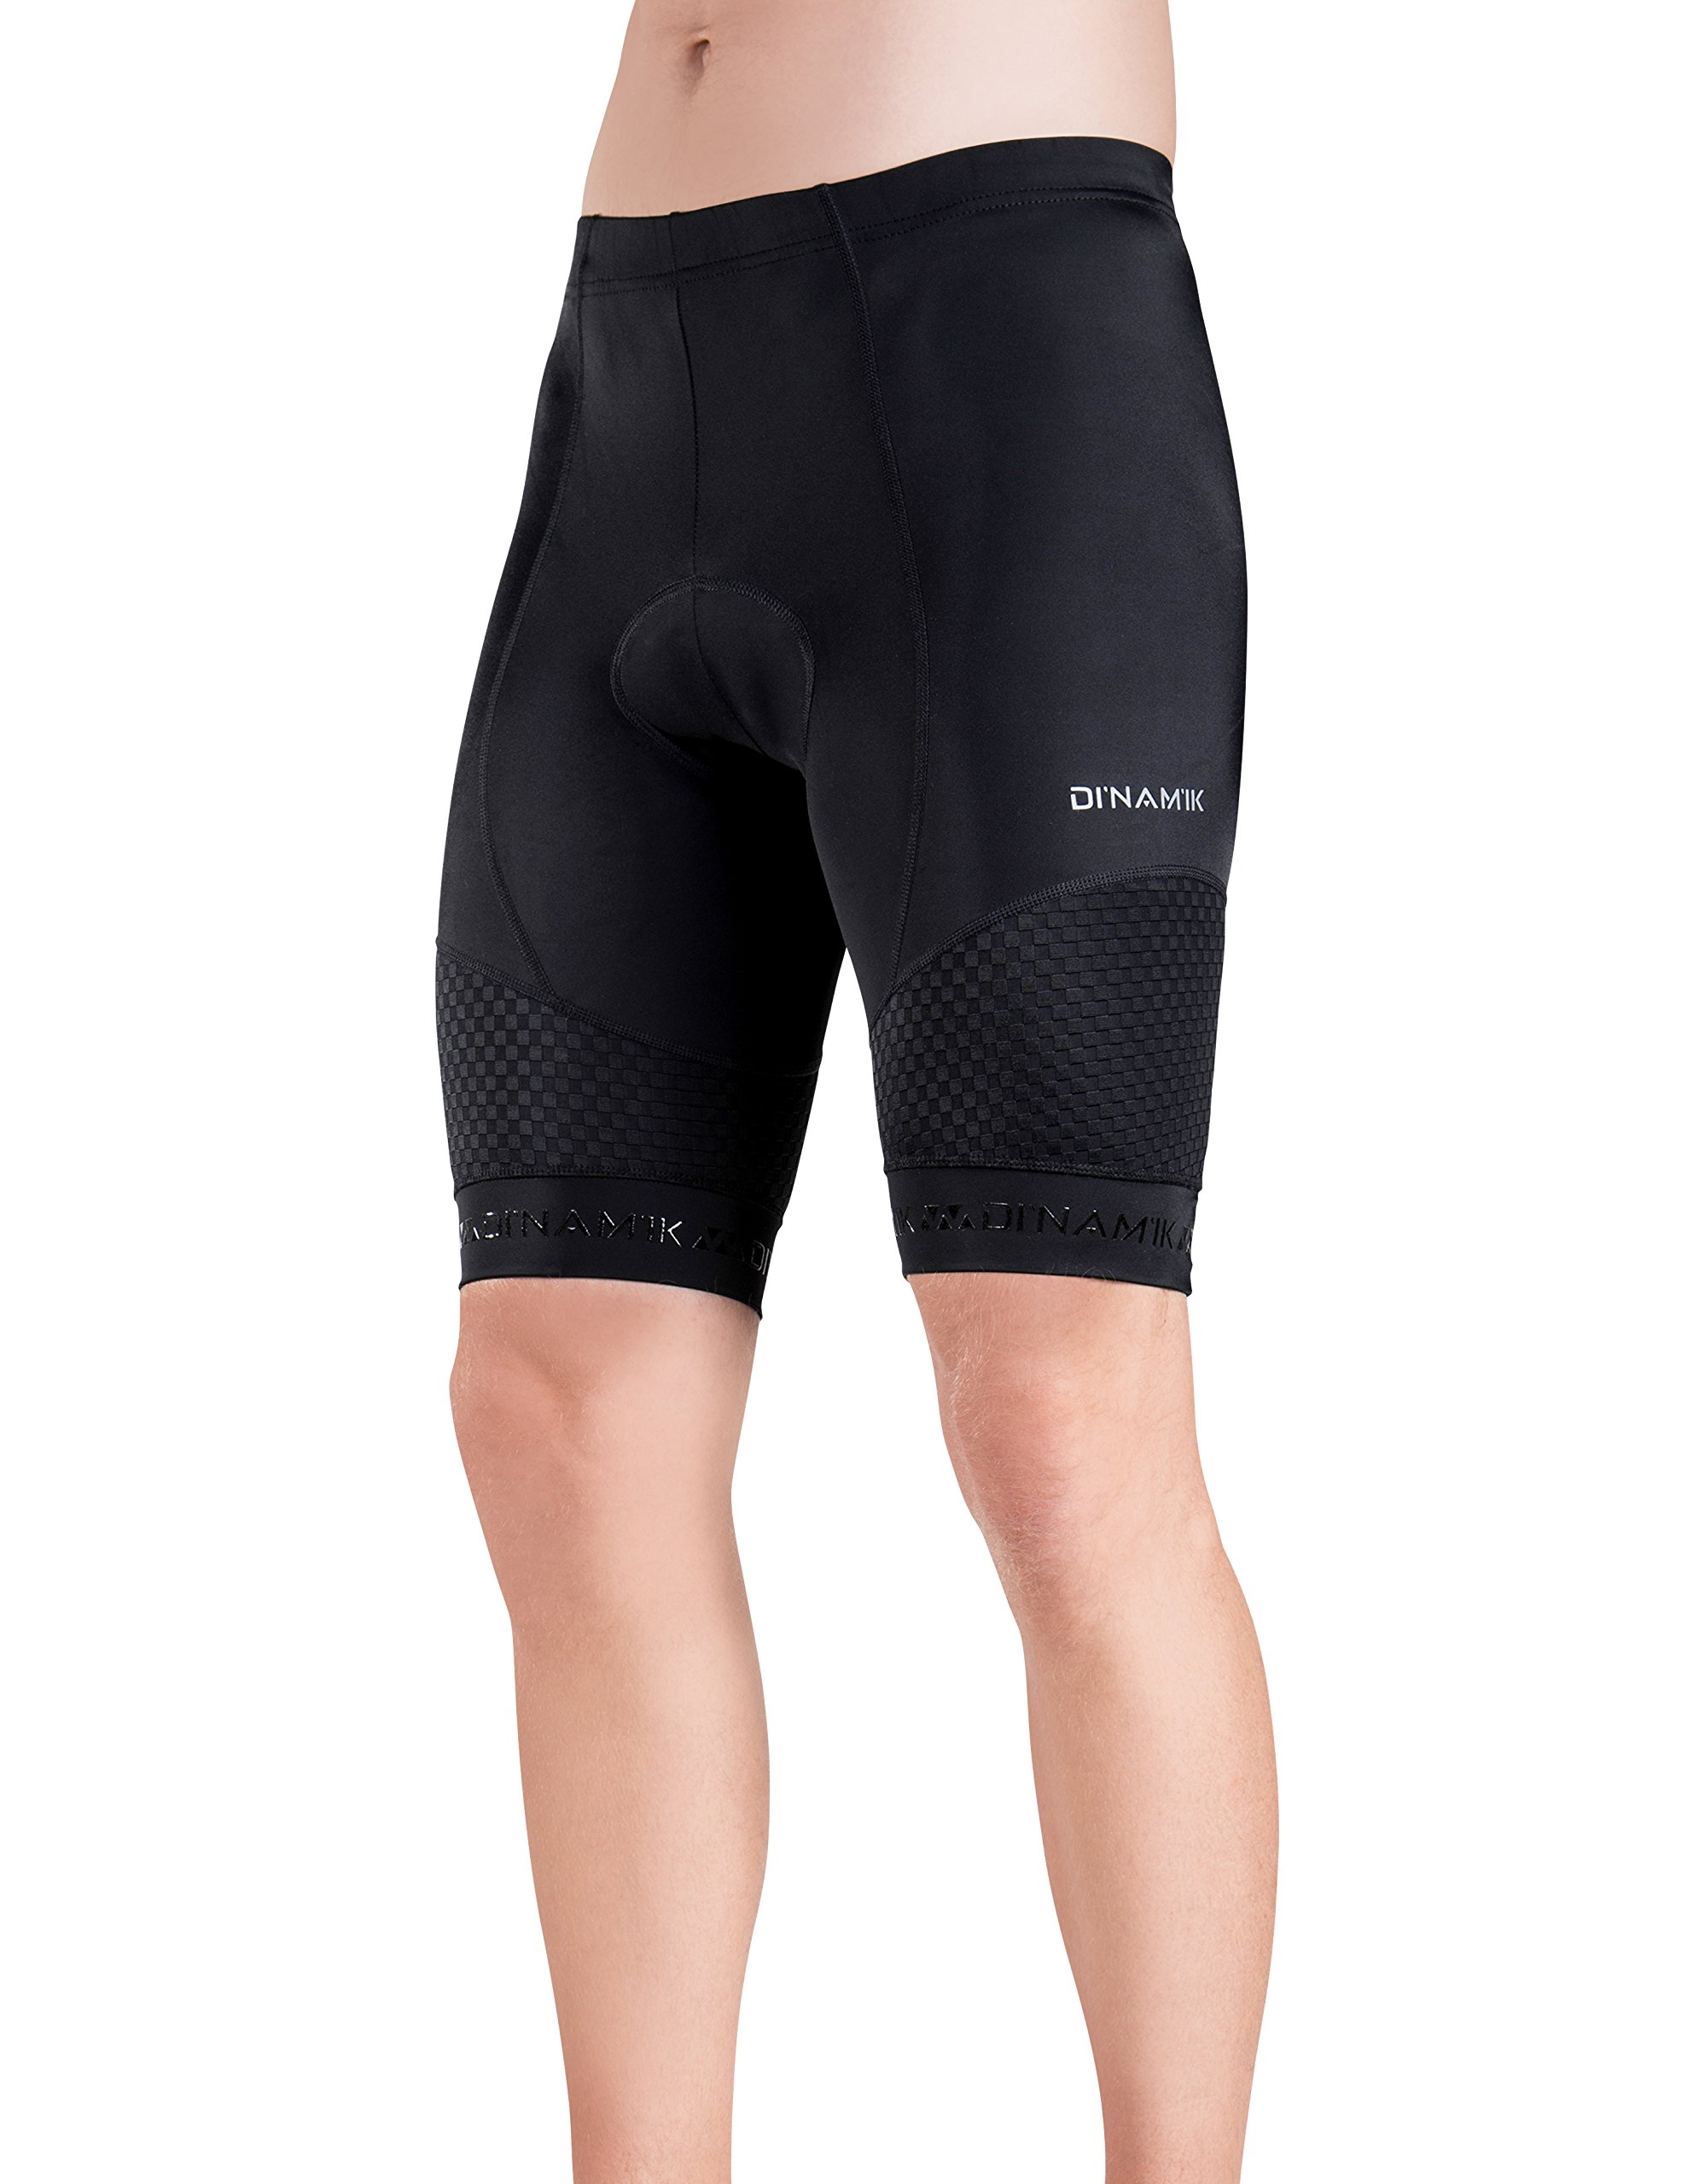 Mens Bike Shorts Light and Breathable Extra Padded Cycling Compression Pants By Dinamik Evo Pro by Dinamik